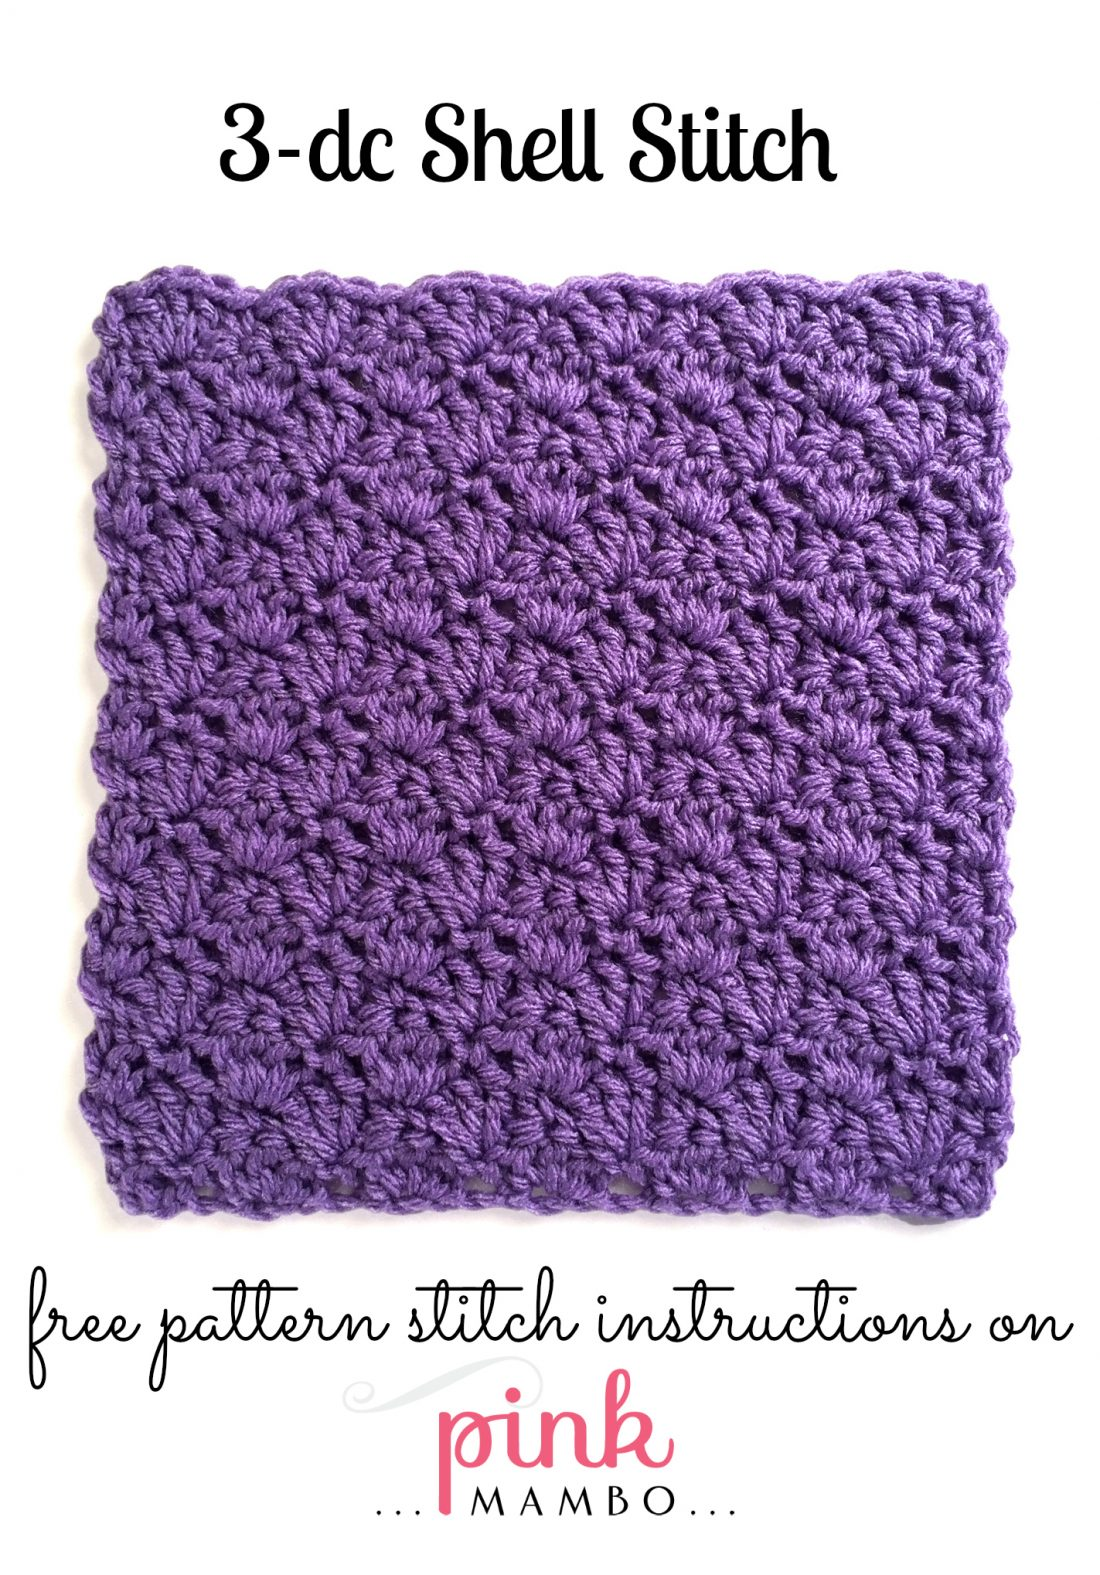 Crochet Stitches Double : Double Crochet Shell Stitch Pattern